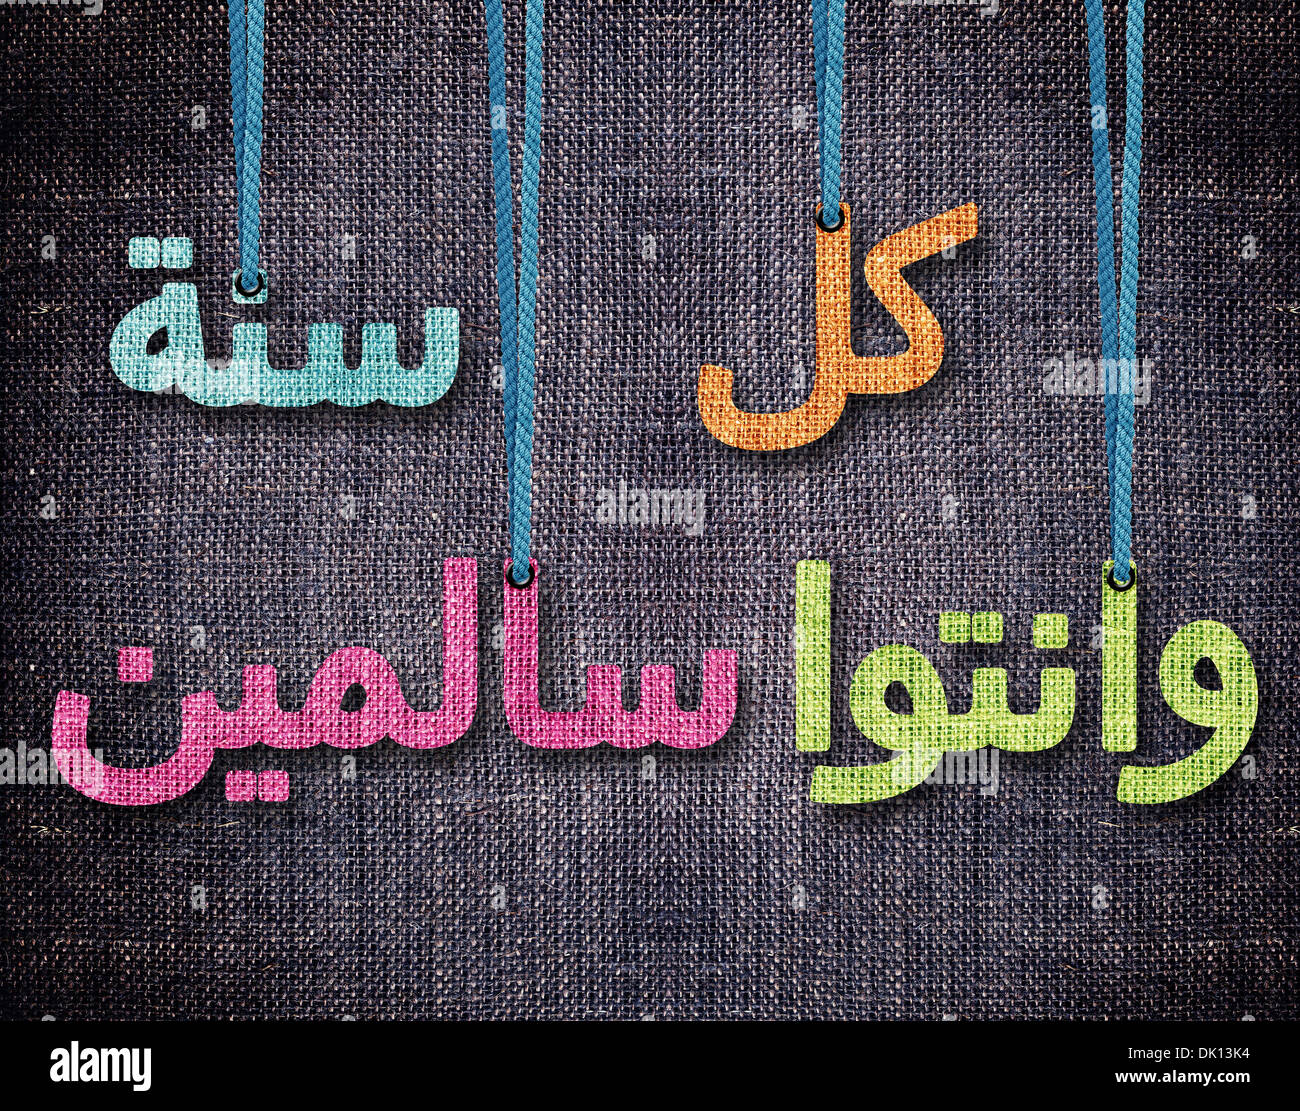 wishing you happy new year in arabic language conceptual image for the islamic new year hijri year